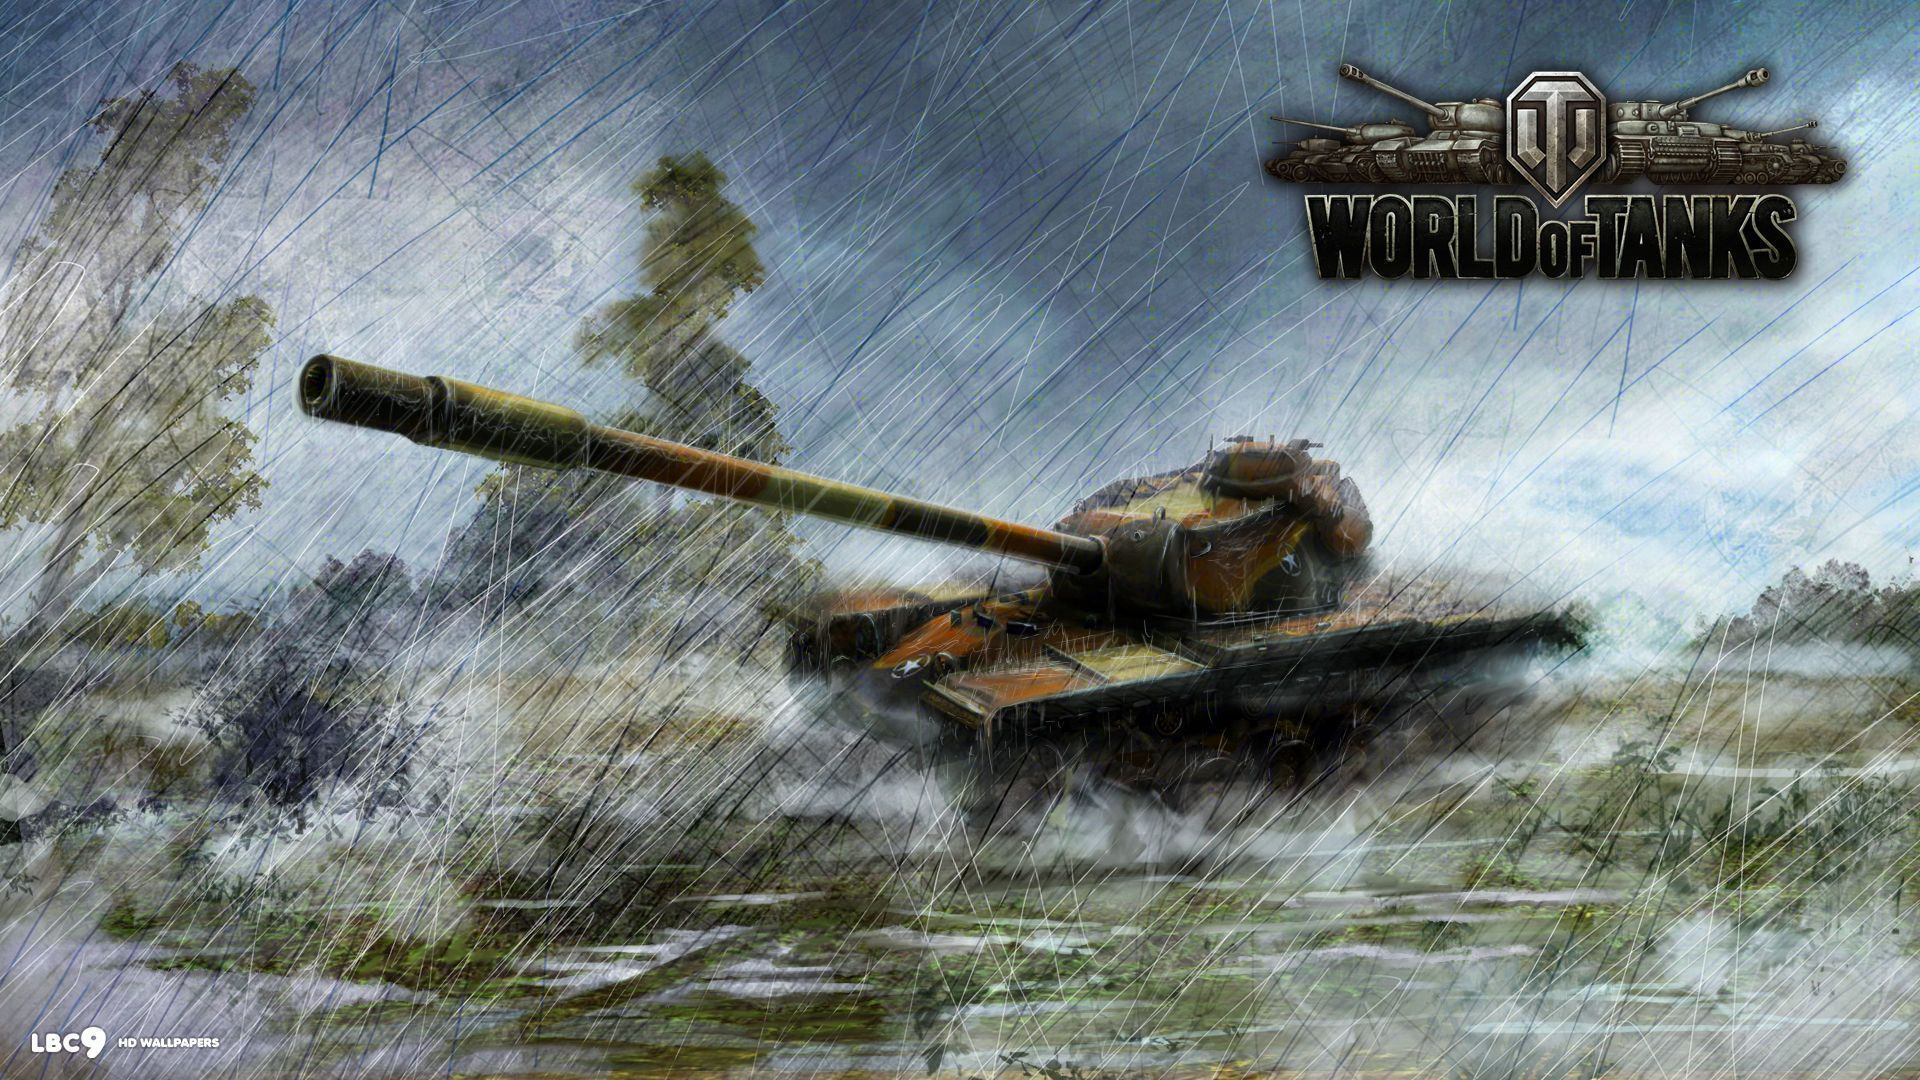 world-of-tanks-hd-wallpaper